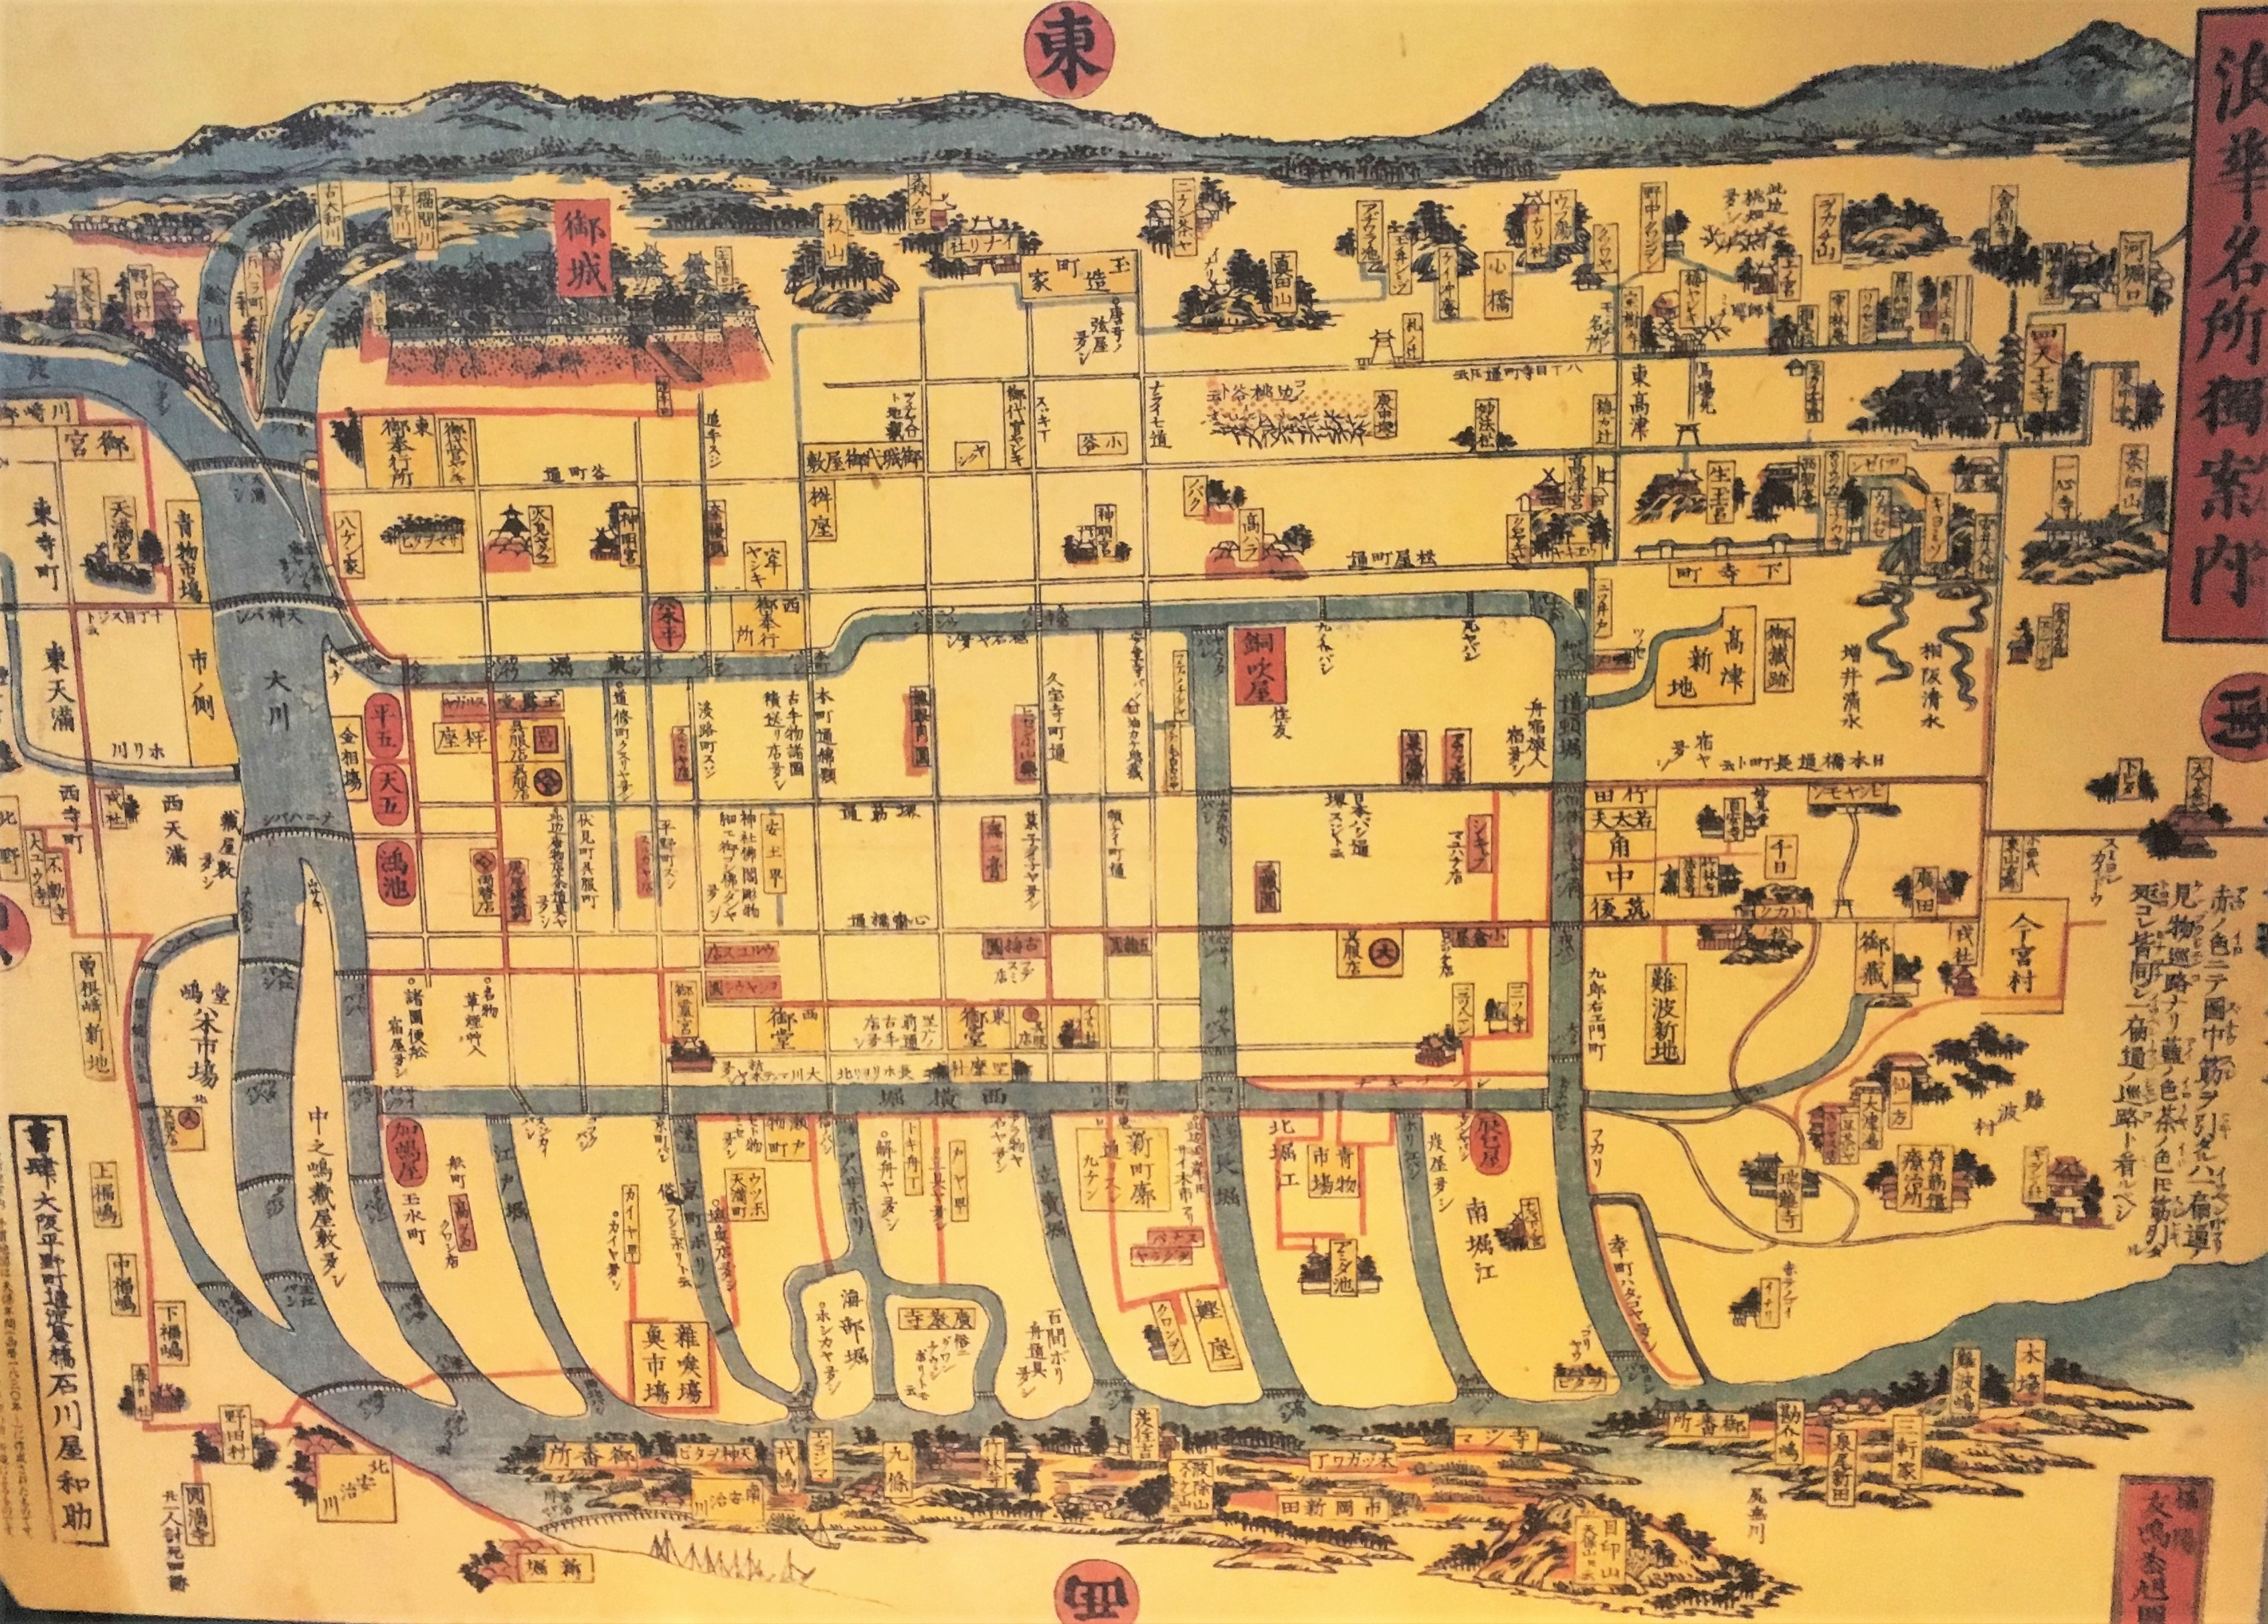 Old map of Osaka and all its rivers